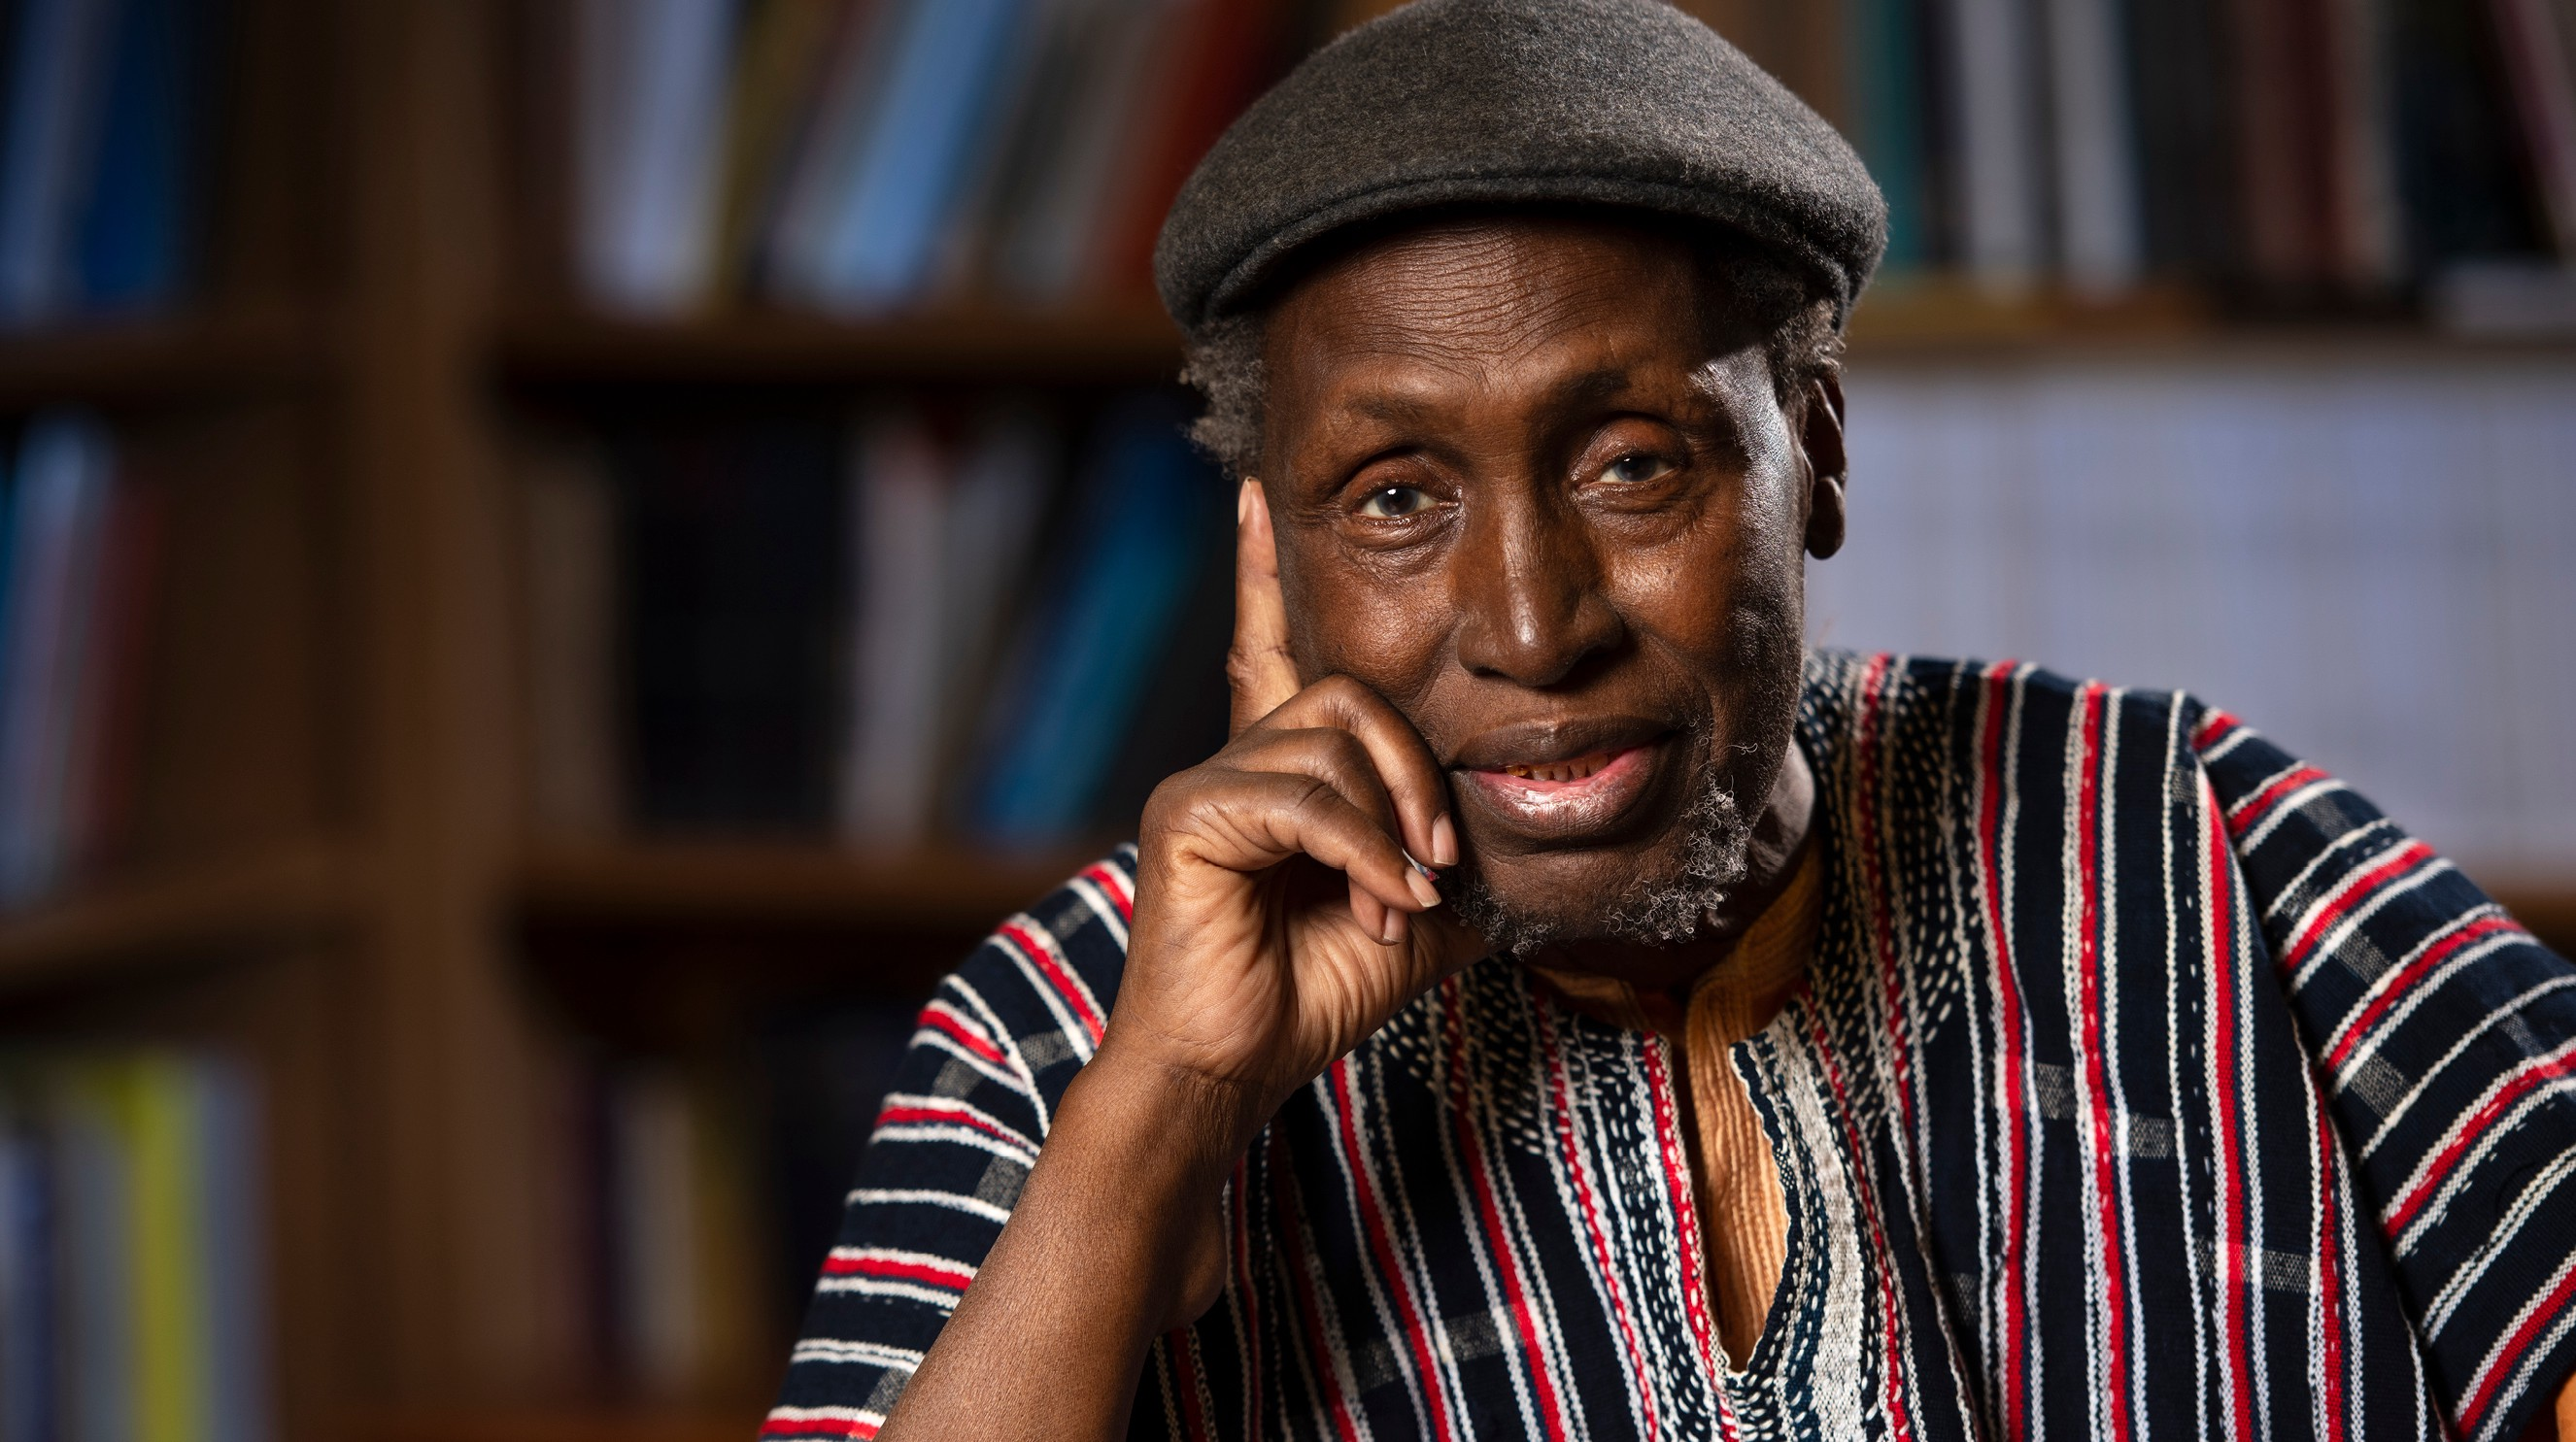 Ngugi wa Thiong'o rests his hand in his right hand in a thinking gesture